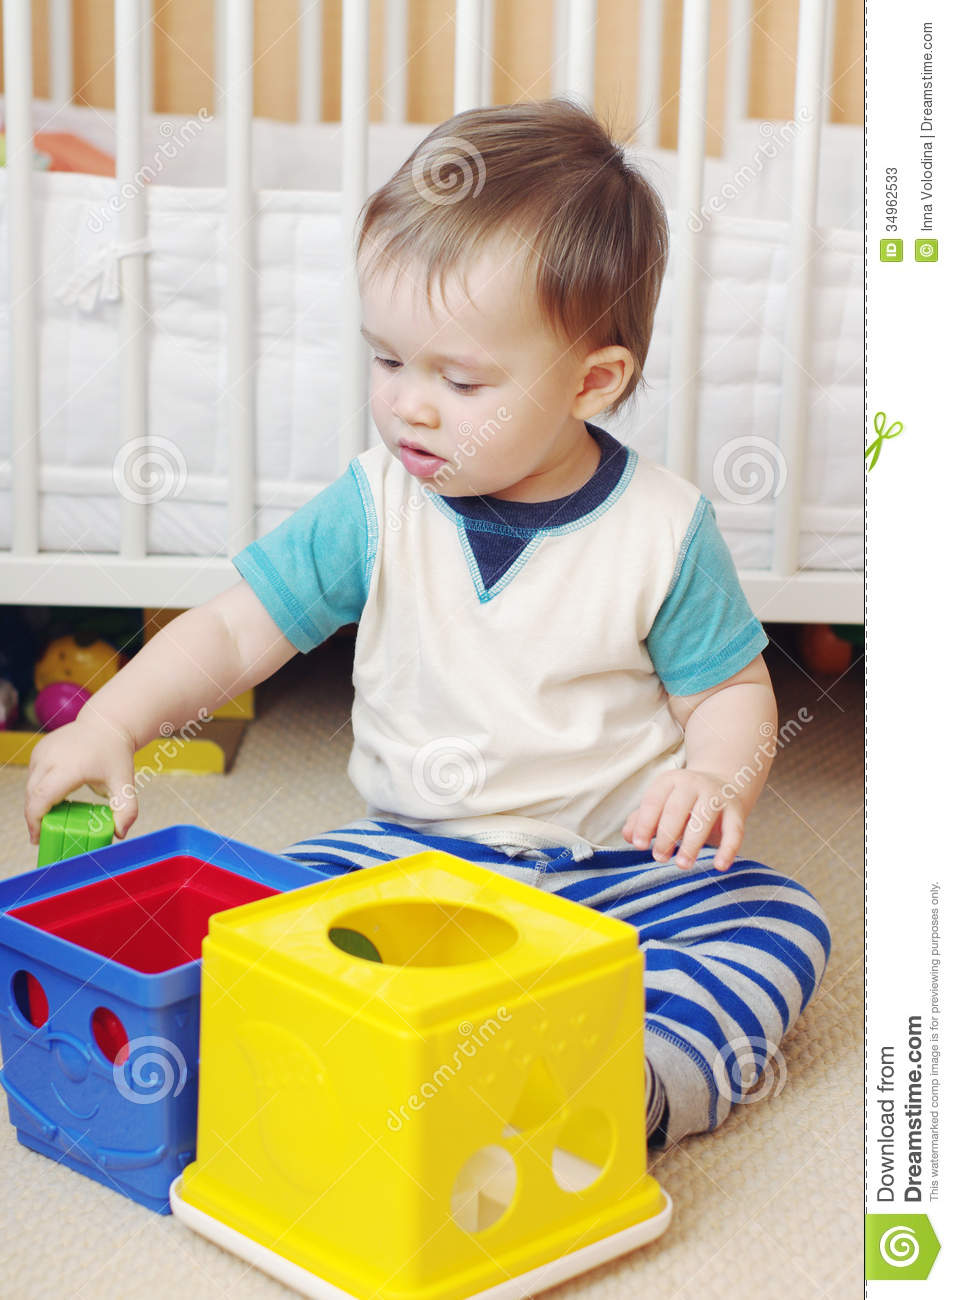 Baby Toys Age 1 : Baby age of year plays toys at home stock image